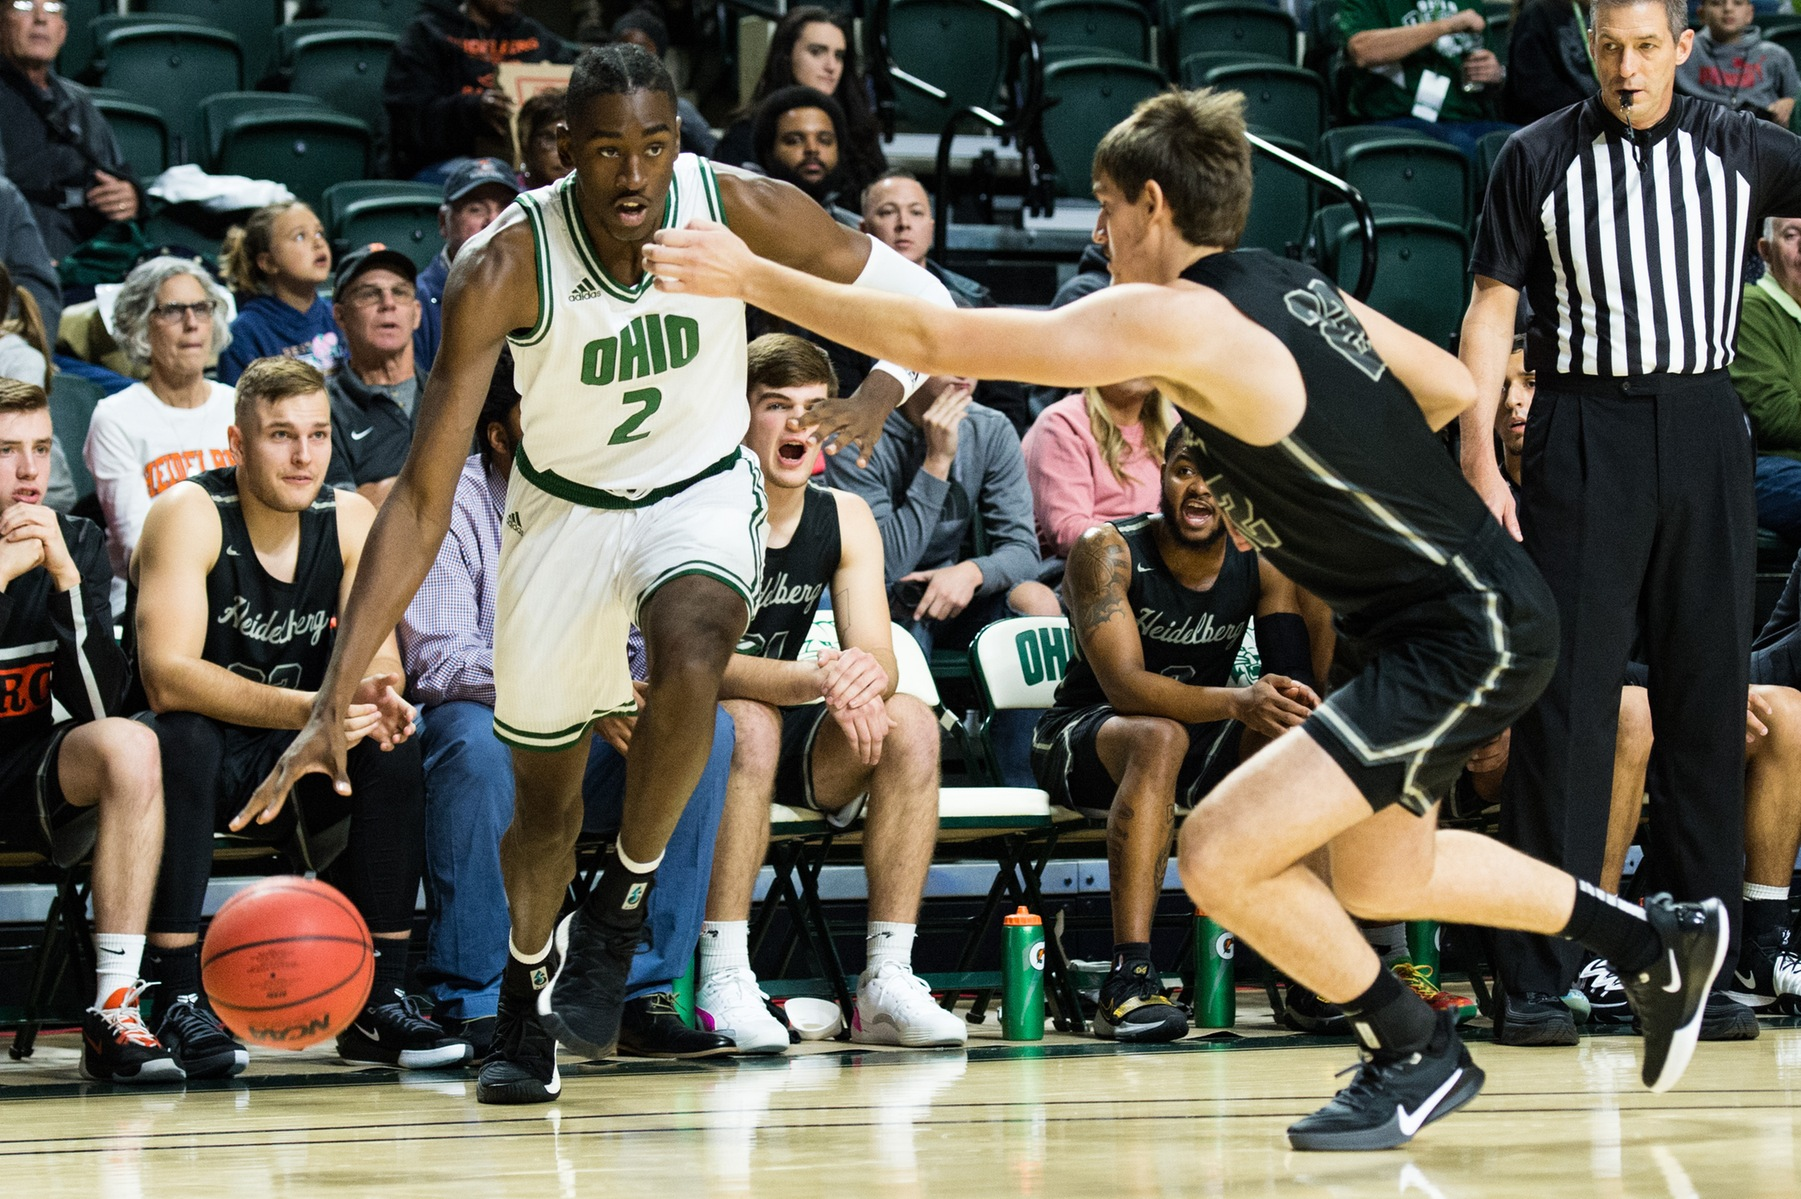 Ohio Men's Basketball Set for Matchup with Iona on Wednesday